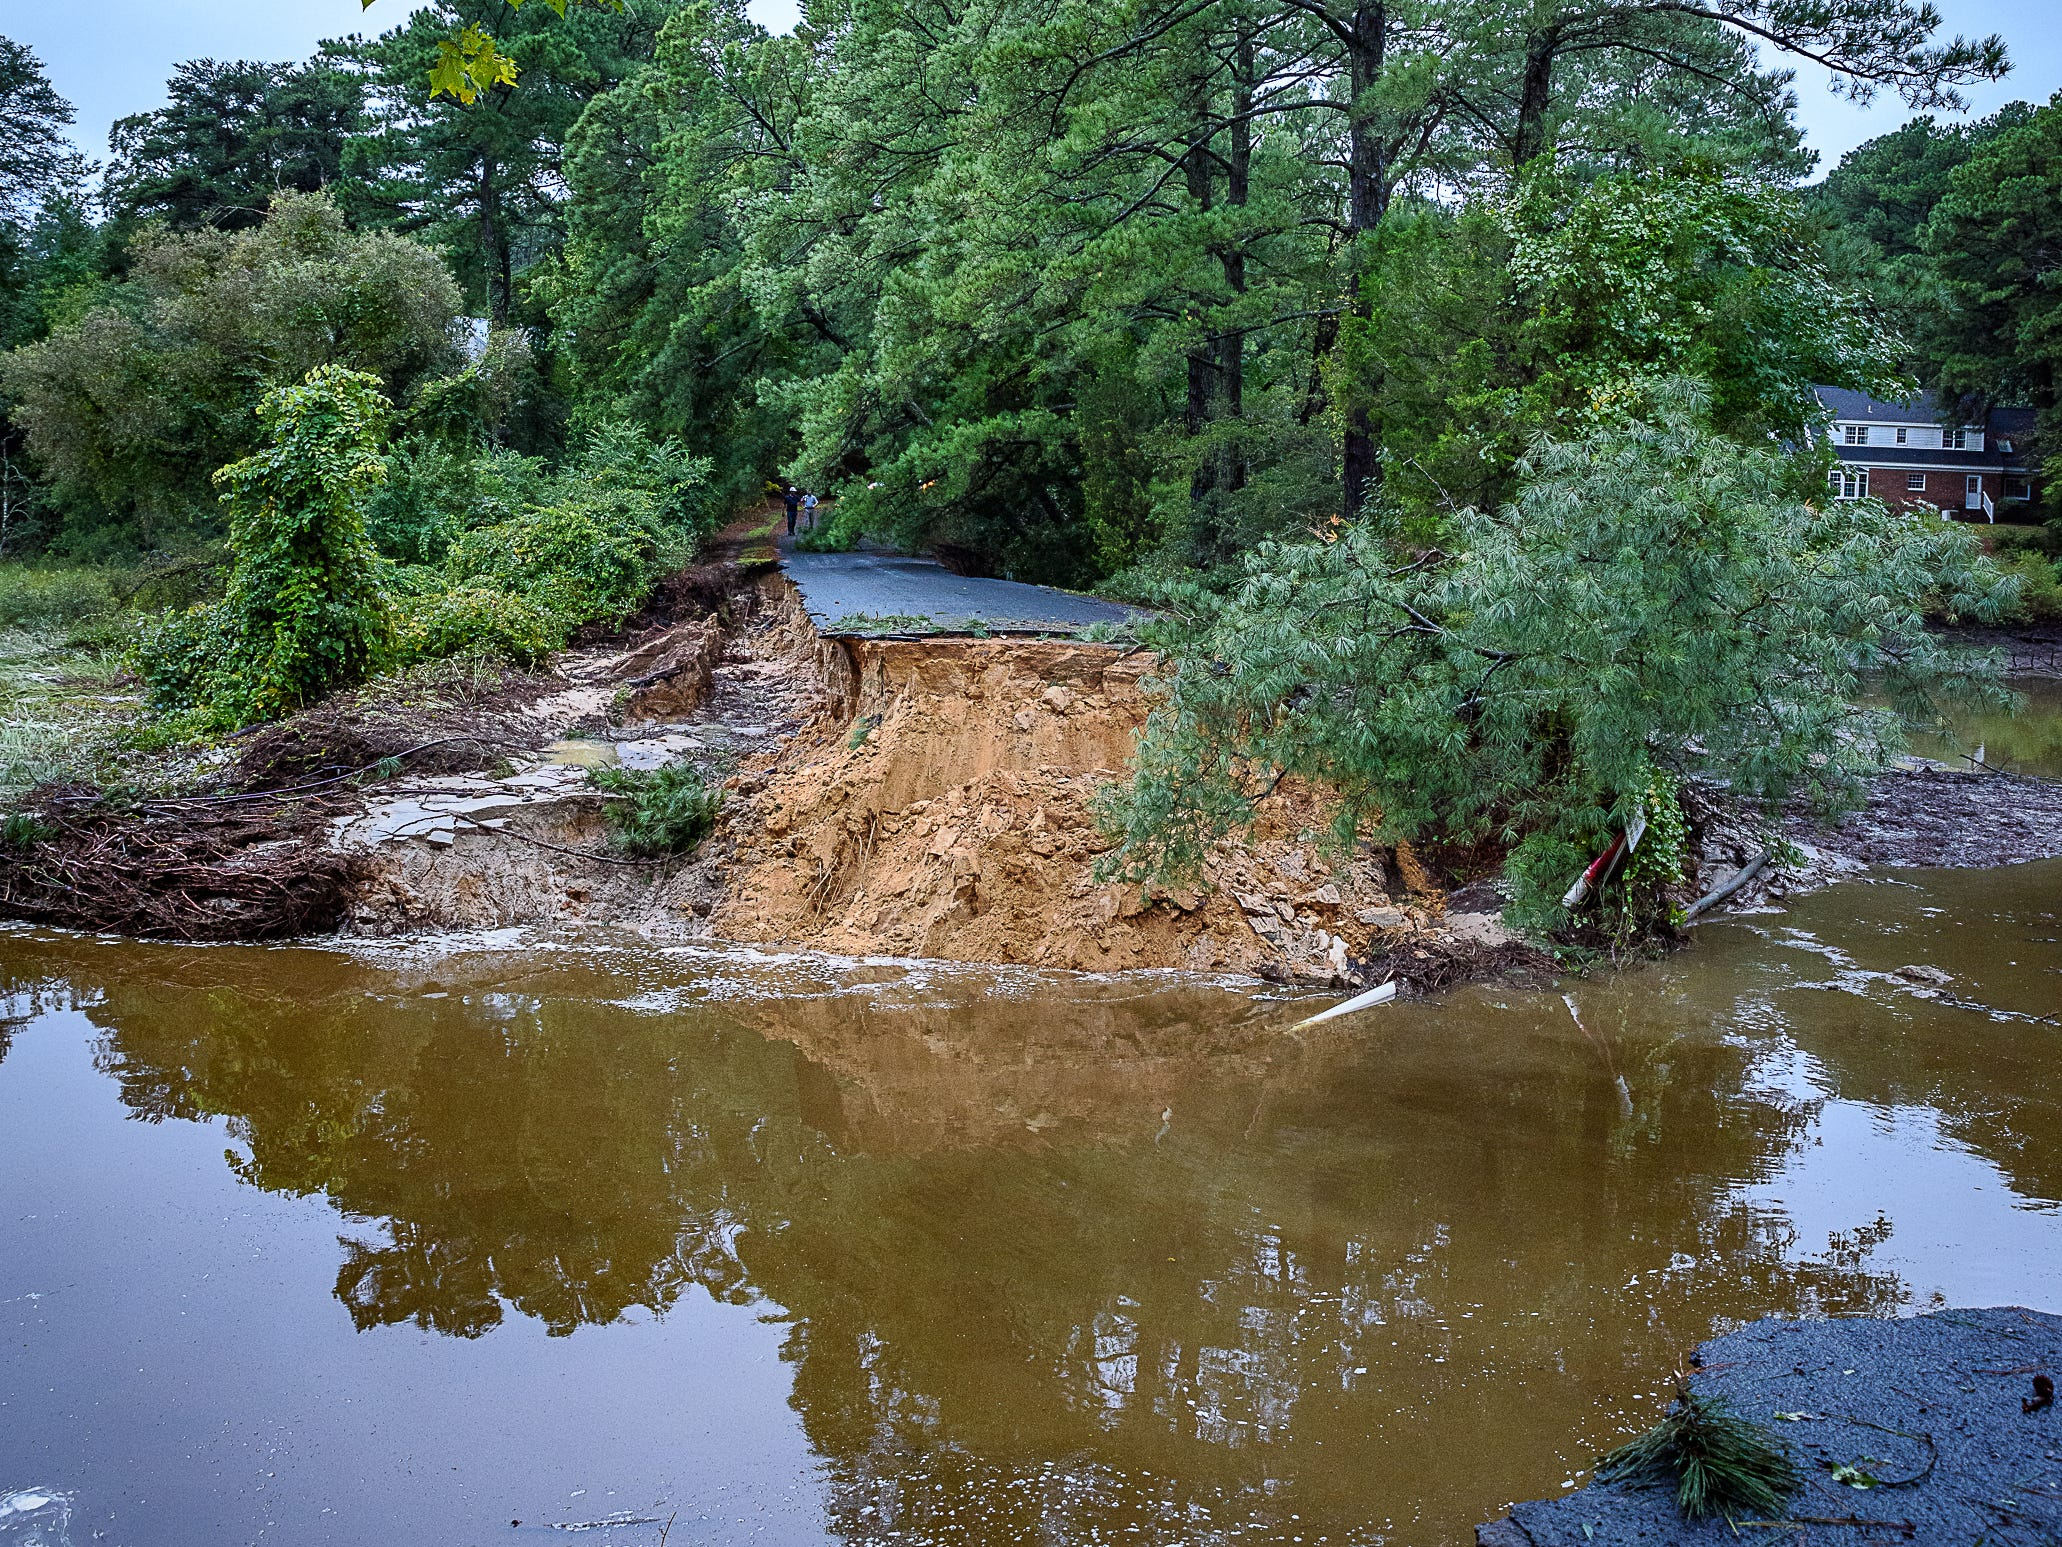 Heavy rains overnight washed out the only road leading into the Hillsborough neighborhood in Belle Haven in Accomack County. The area is bracing for significant impact from the approaching Hurricane Florence.